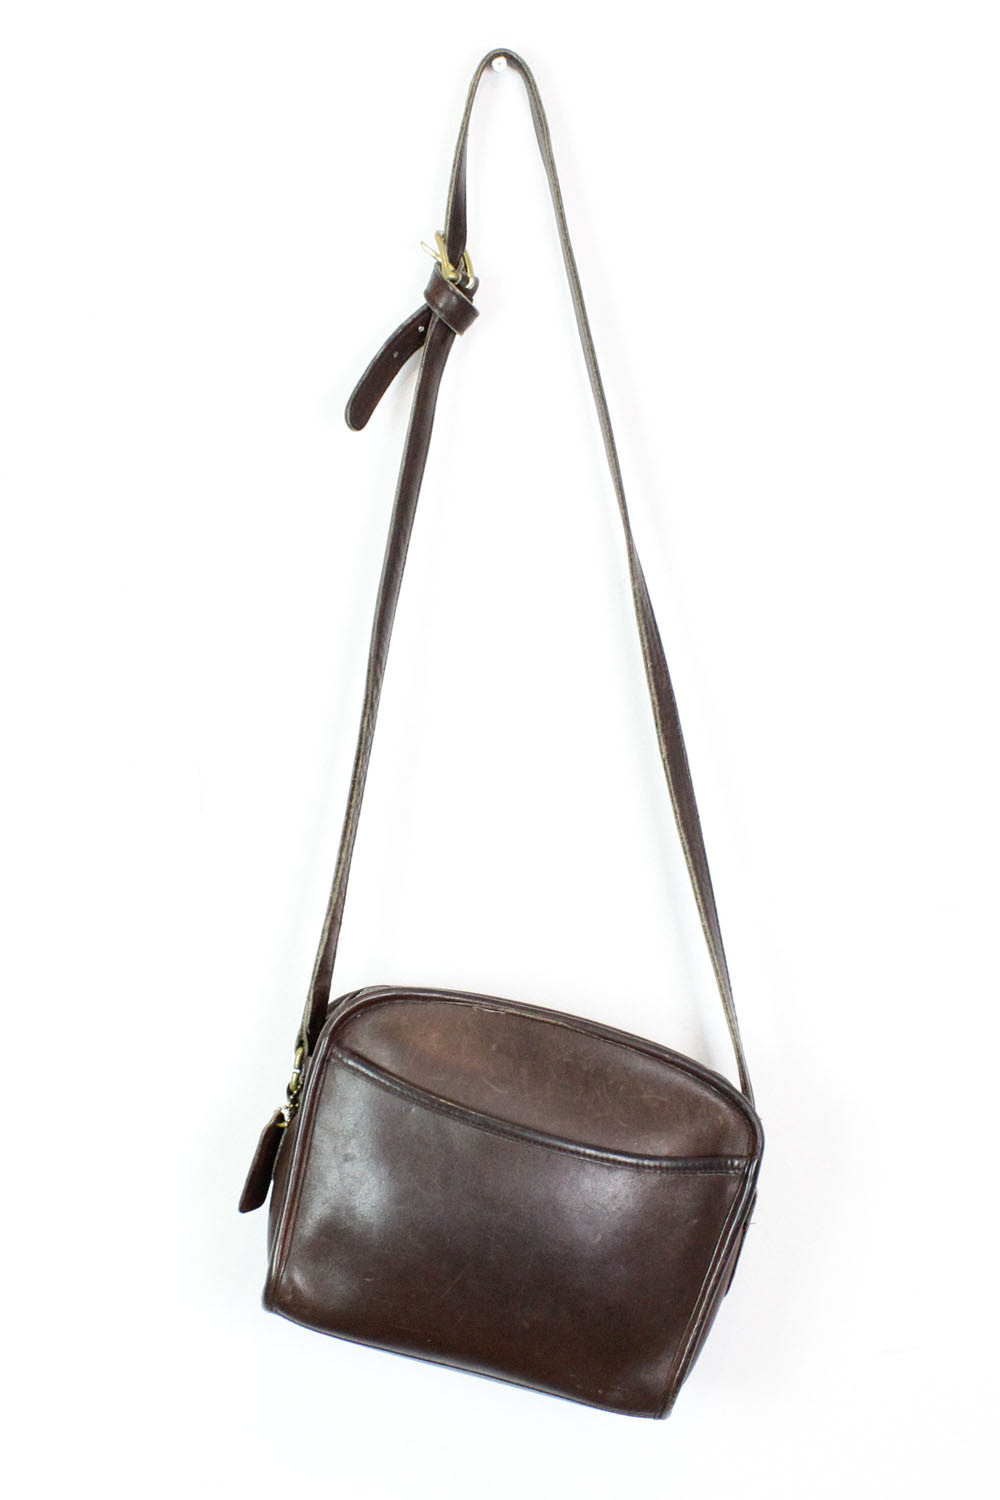 Coach espresso brown crossbody bag